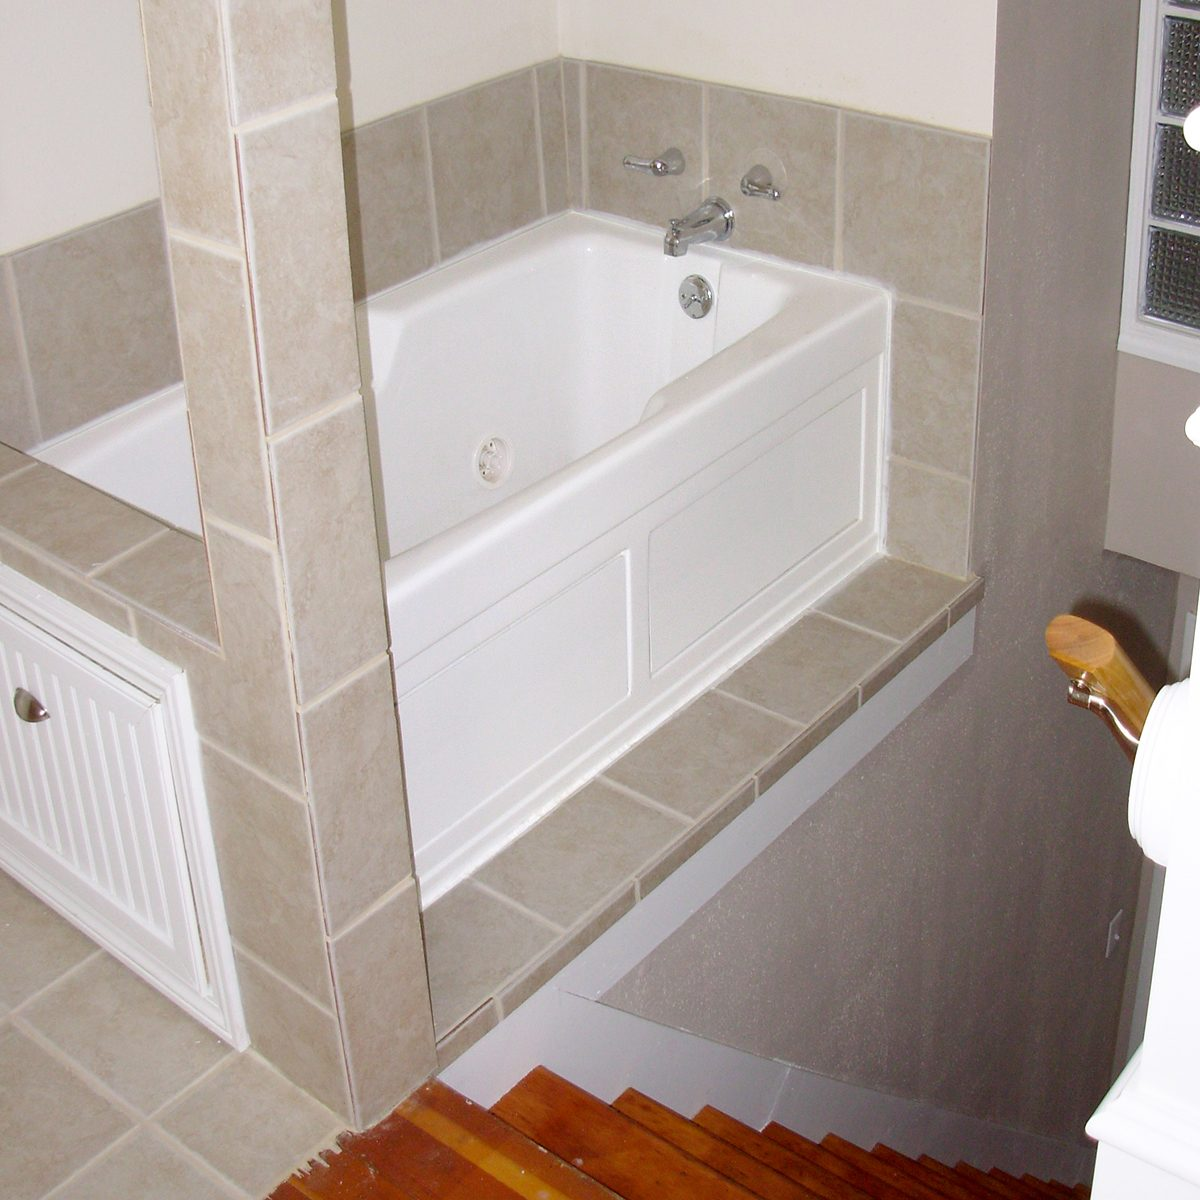 Poorly designed bathtub above stairs | Construction Pro Tips